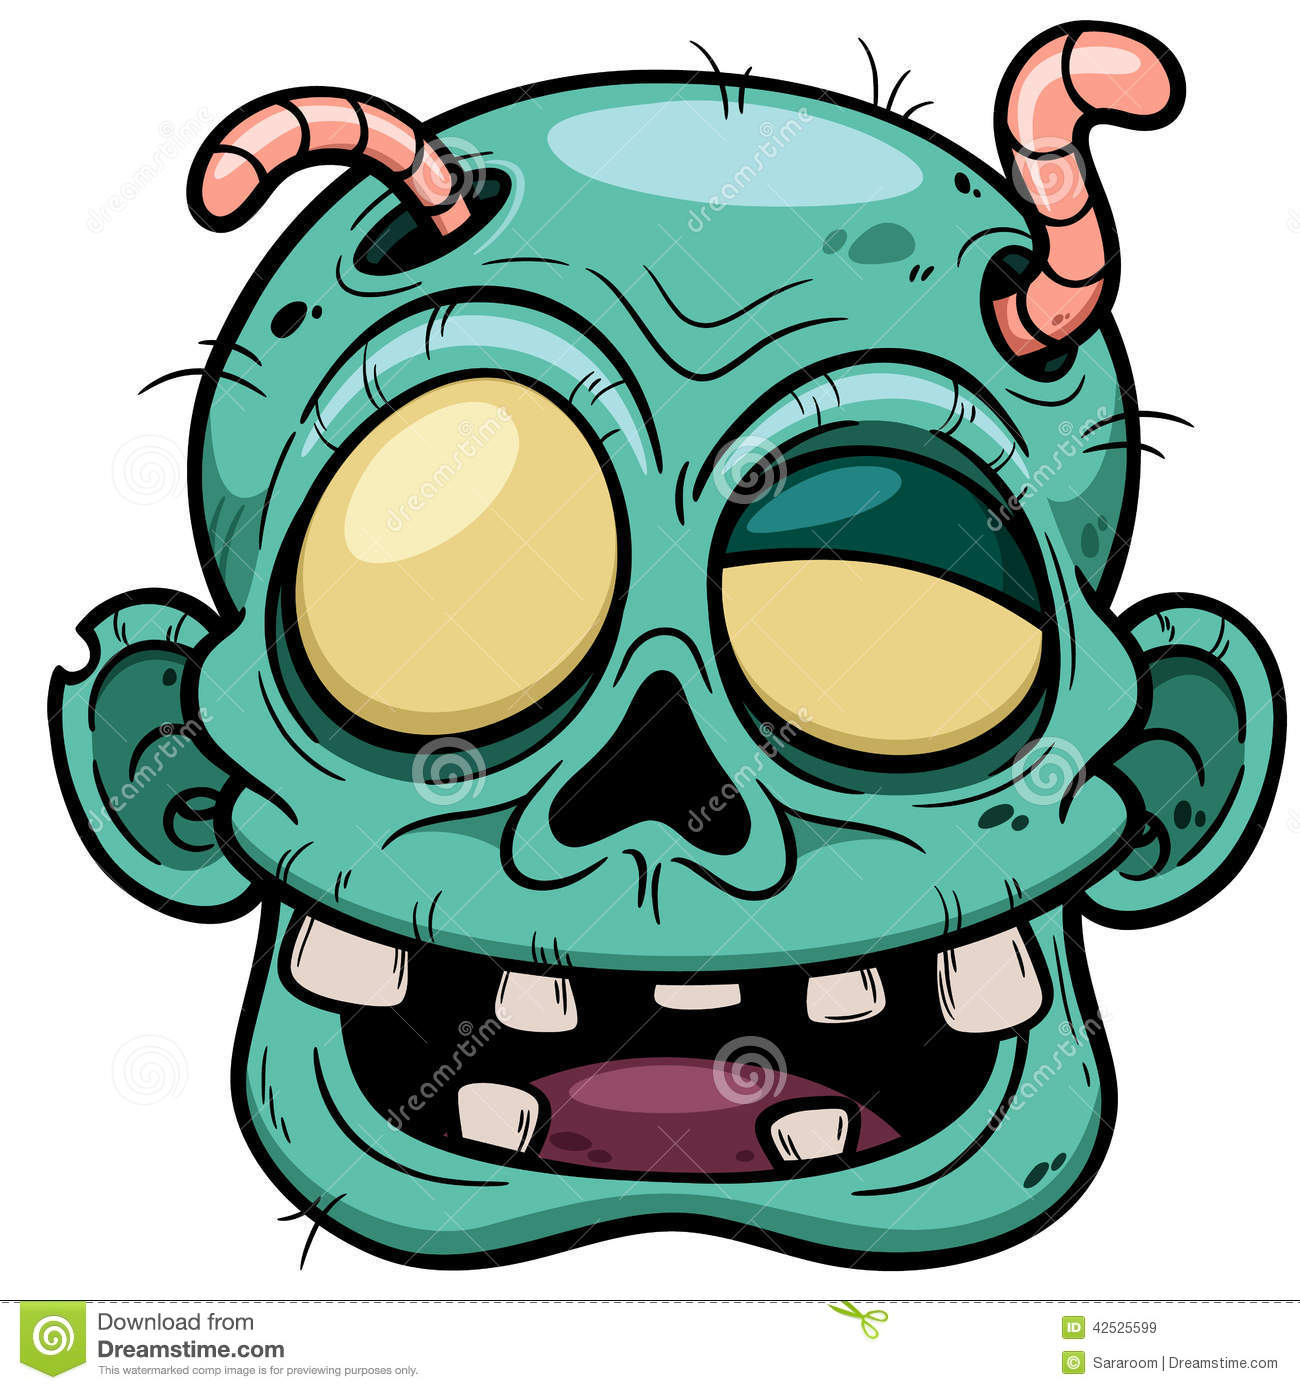 Vector illustration of Cartoon Zombie face.